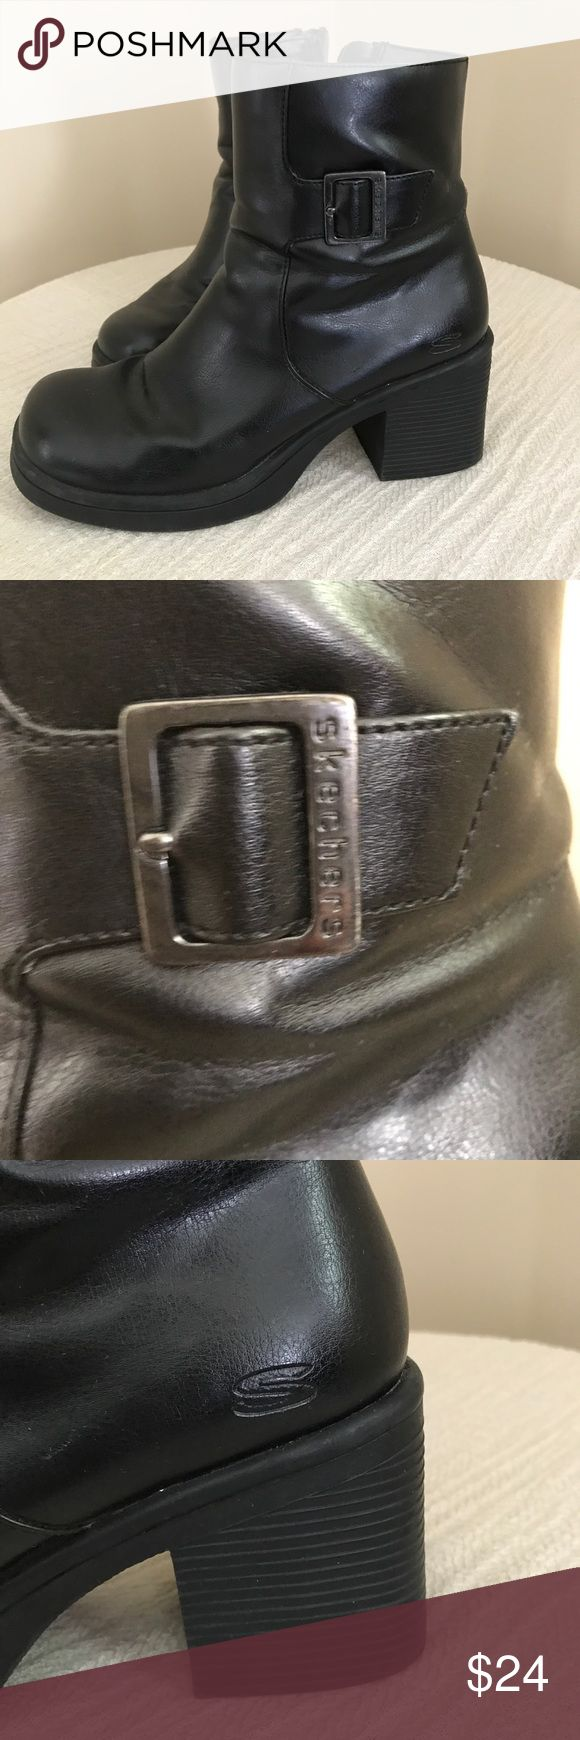 Black Boots Gently used. See photos for any defects. Bundle and save! Sketchers Shoes Ankle Boots & Booties